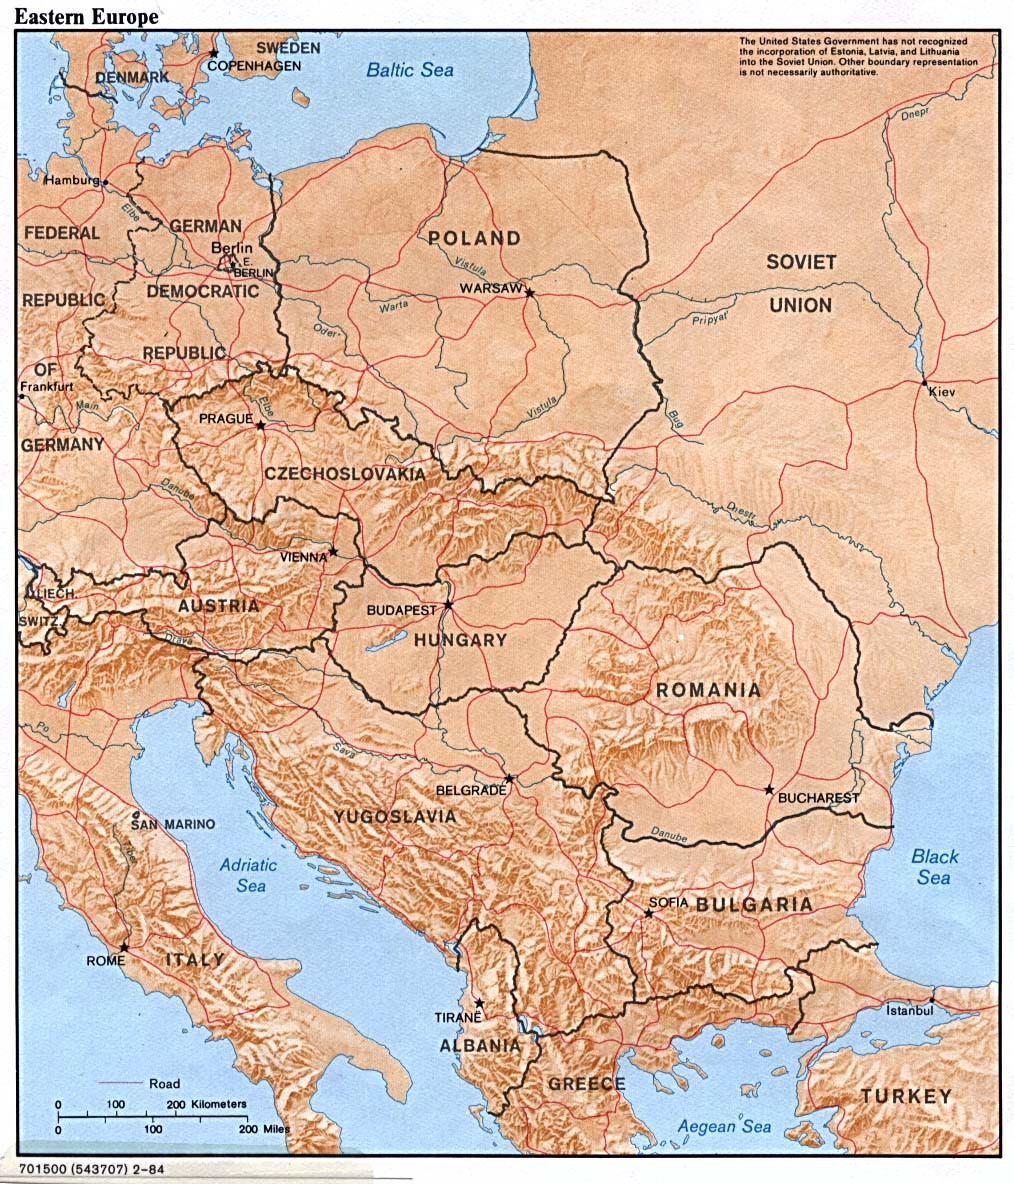 Eastern Europe Country Map Eastern Europe Mappery - Map of eastern europe